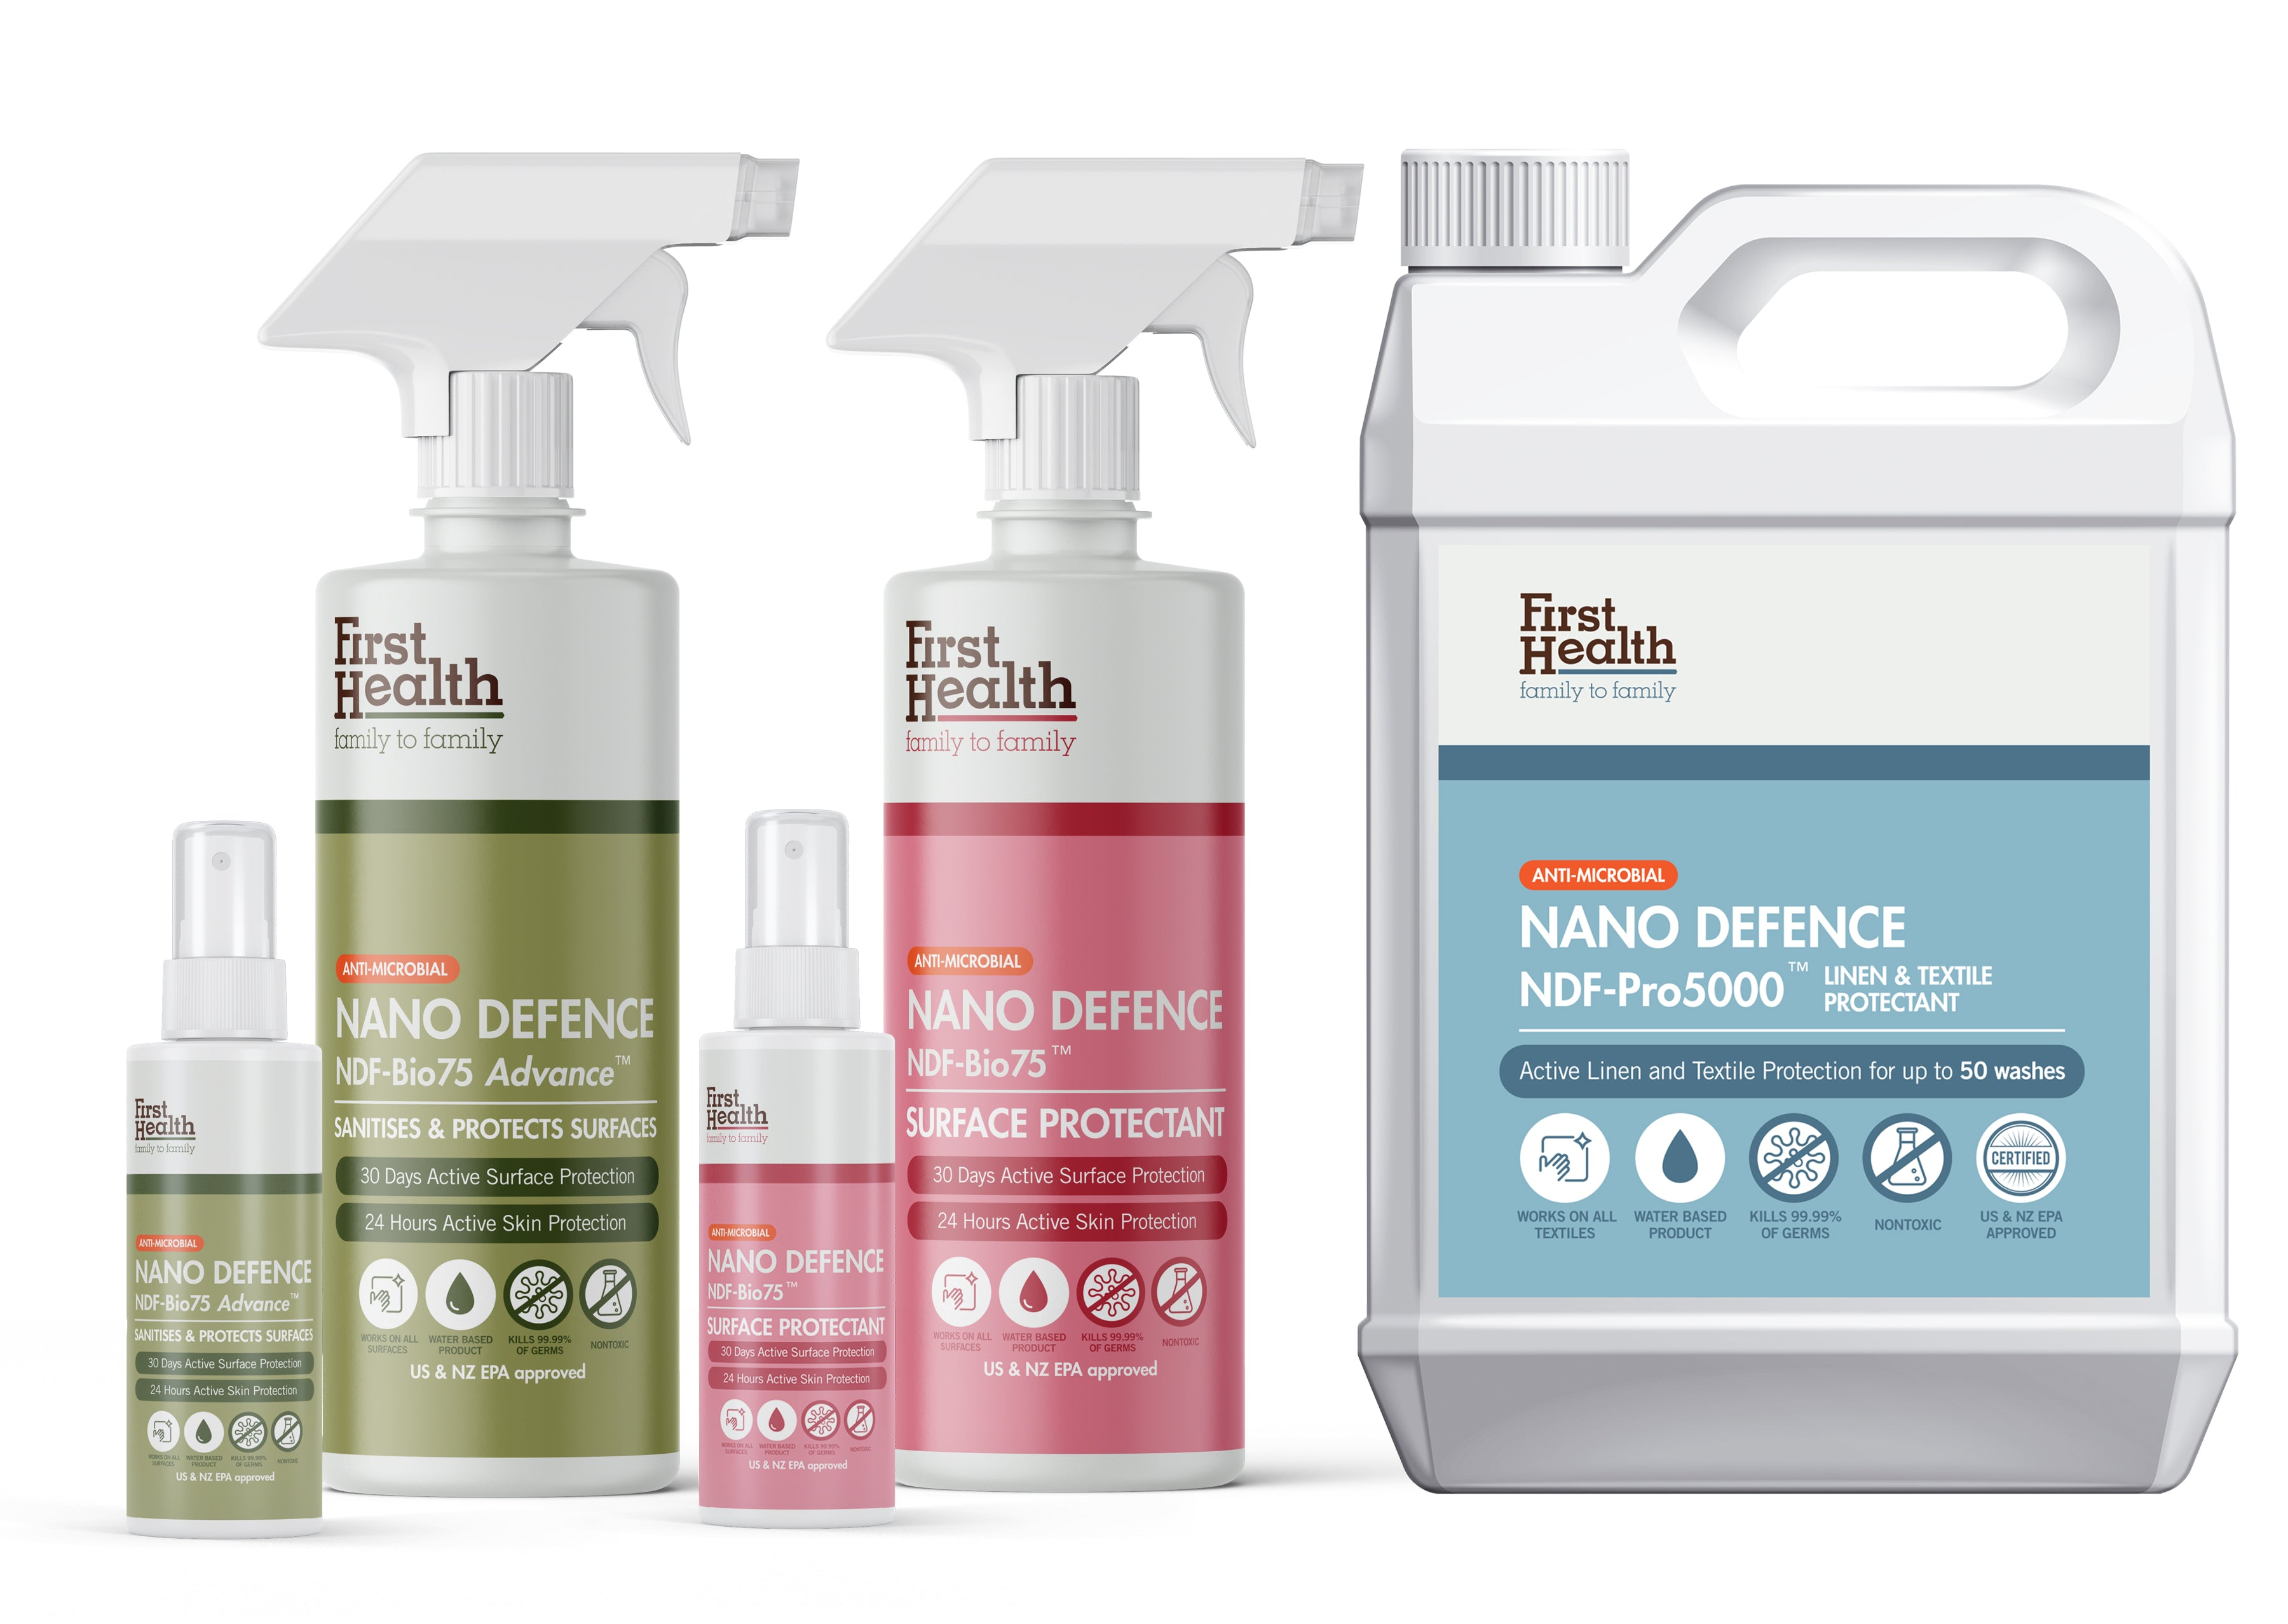 The full range of First Health Nano Defence (NDF) protectants.